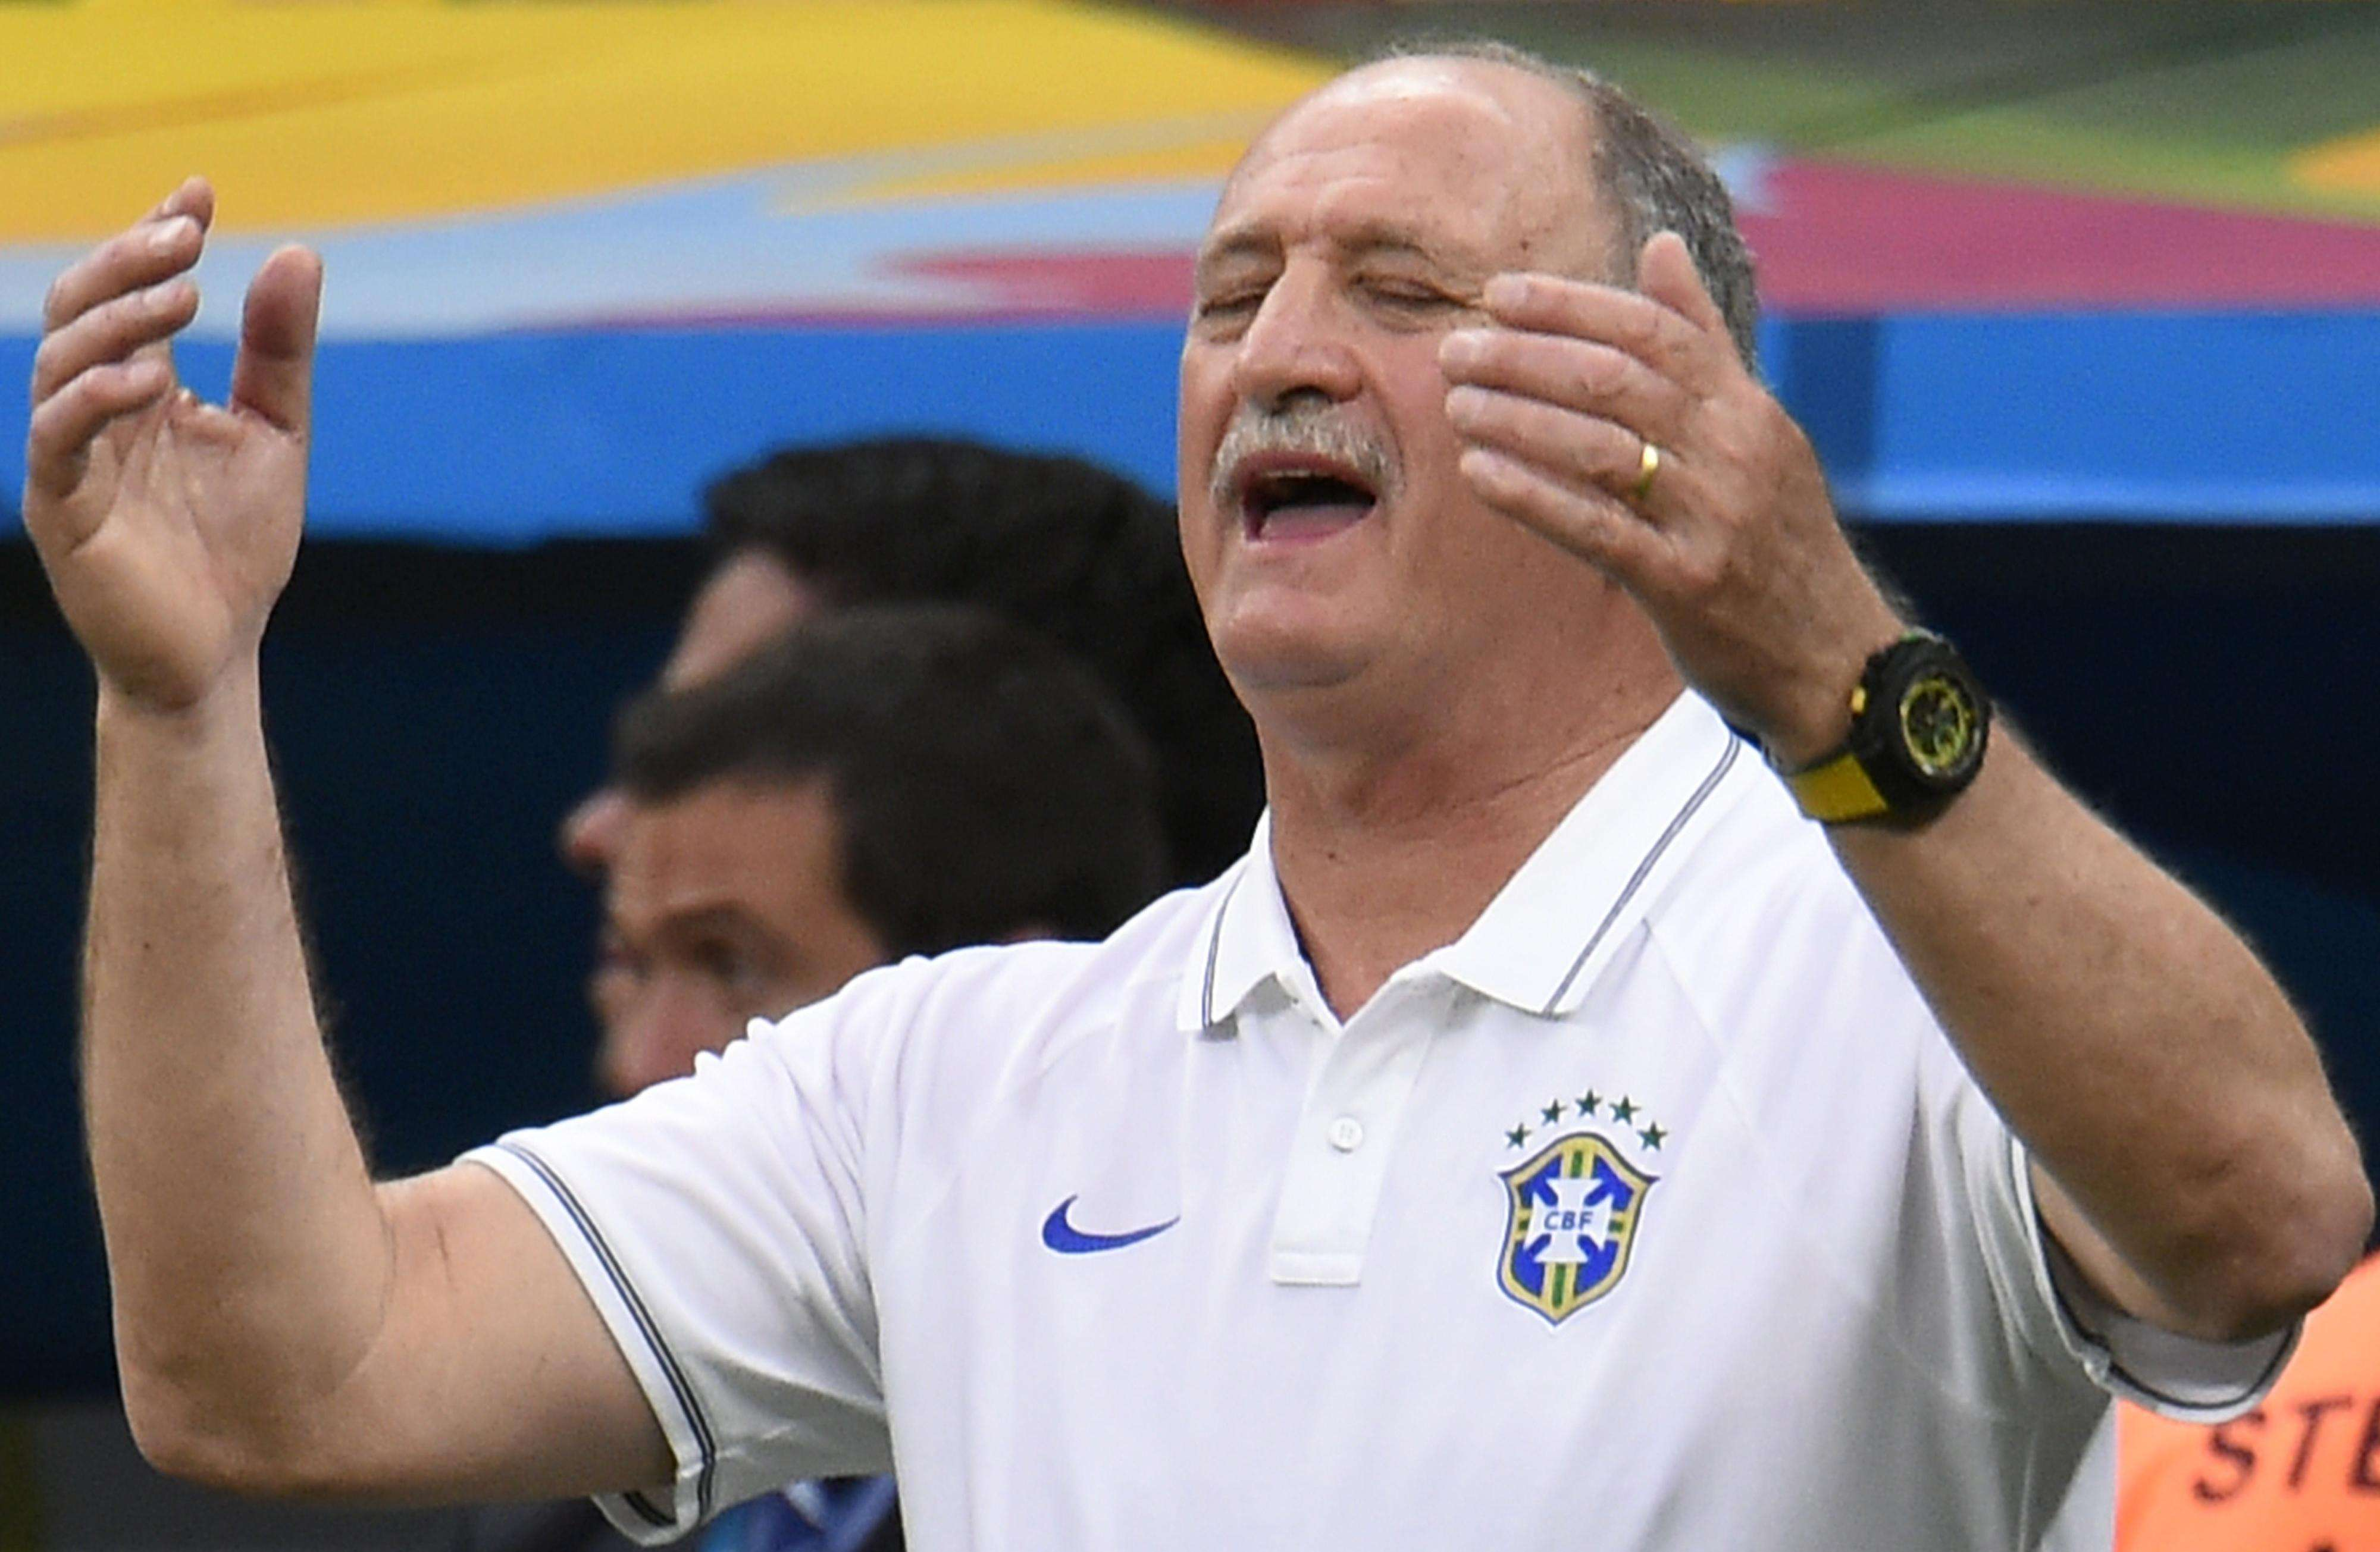 Scolari leaves his future to CBF after Holland loss